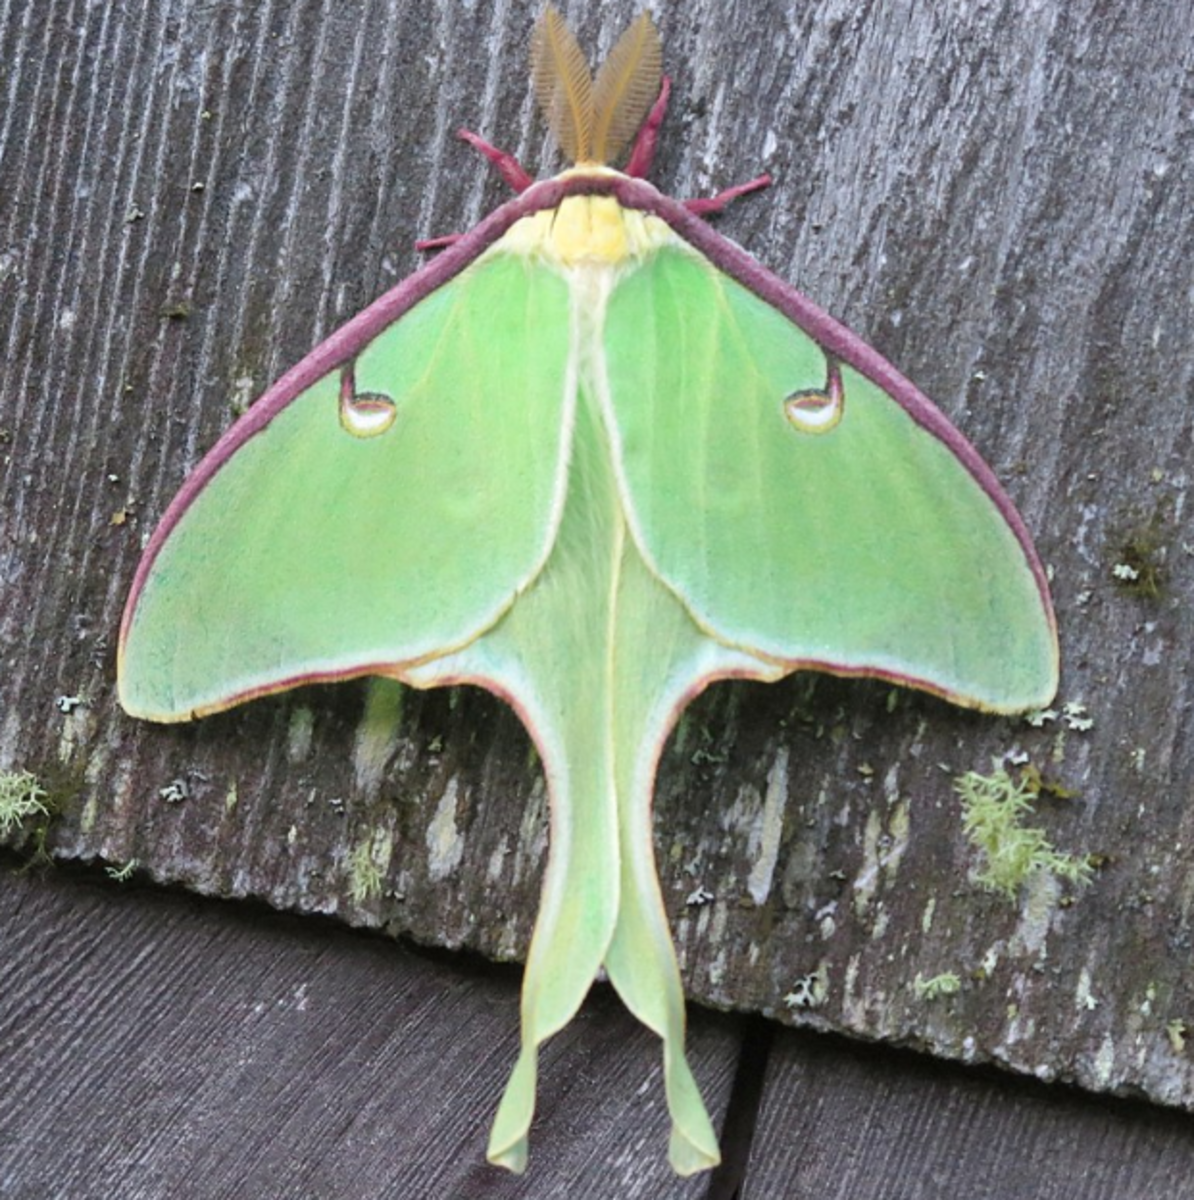 The other-worldly luna moth often comes to lights